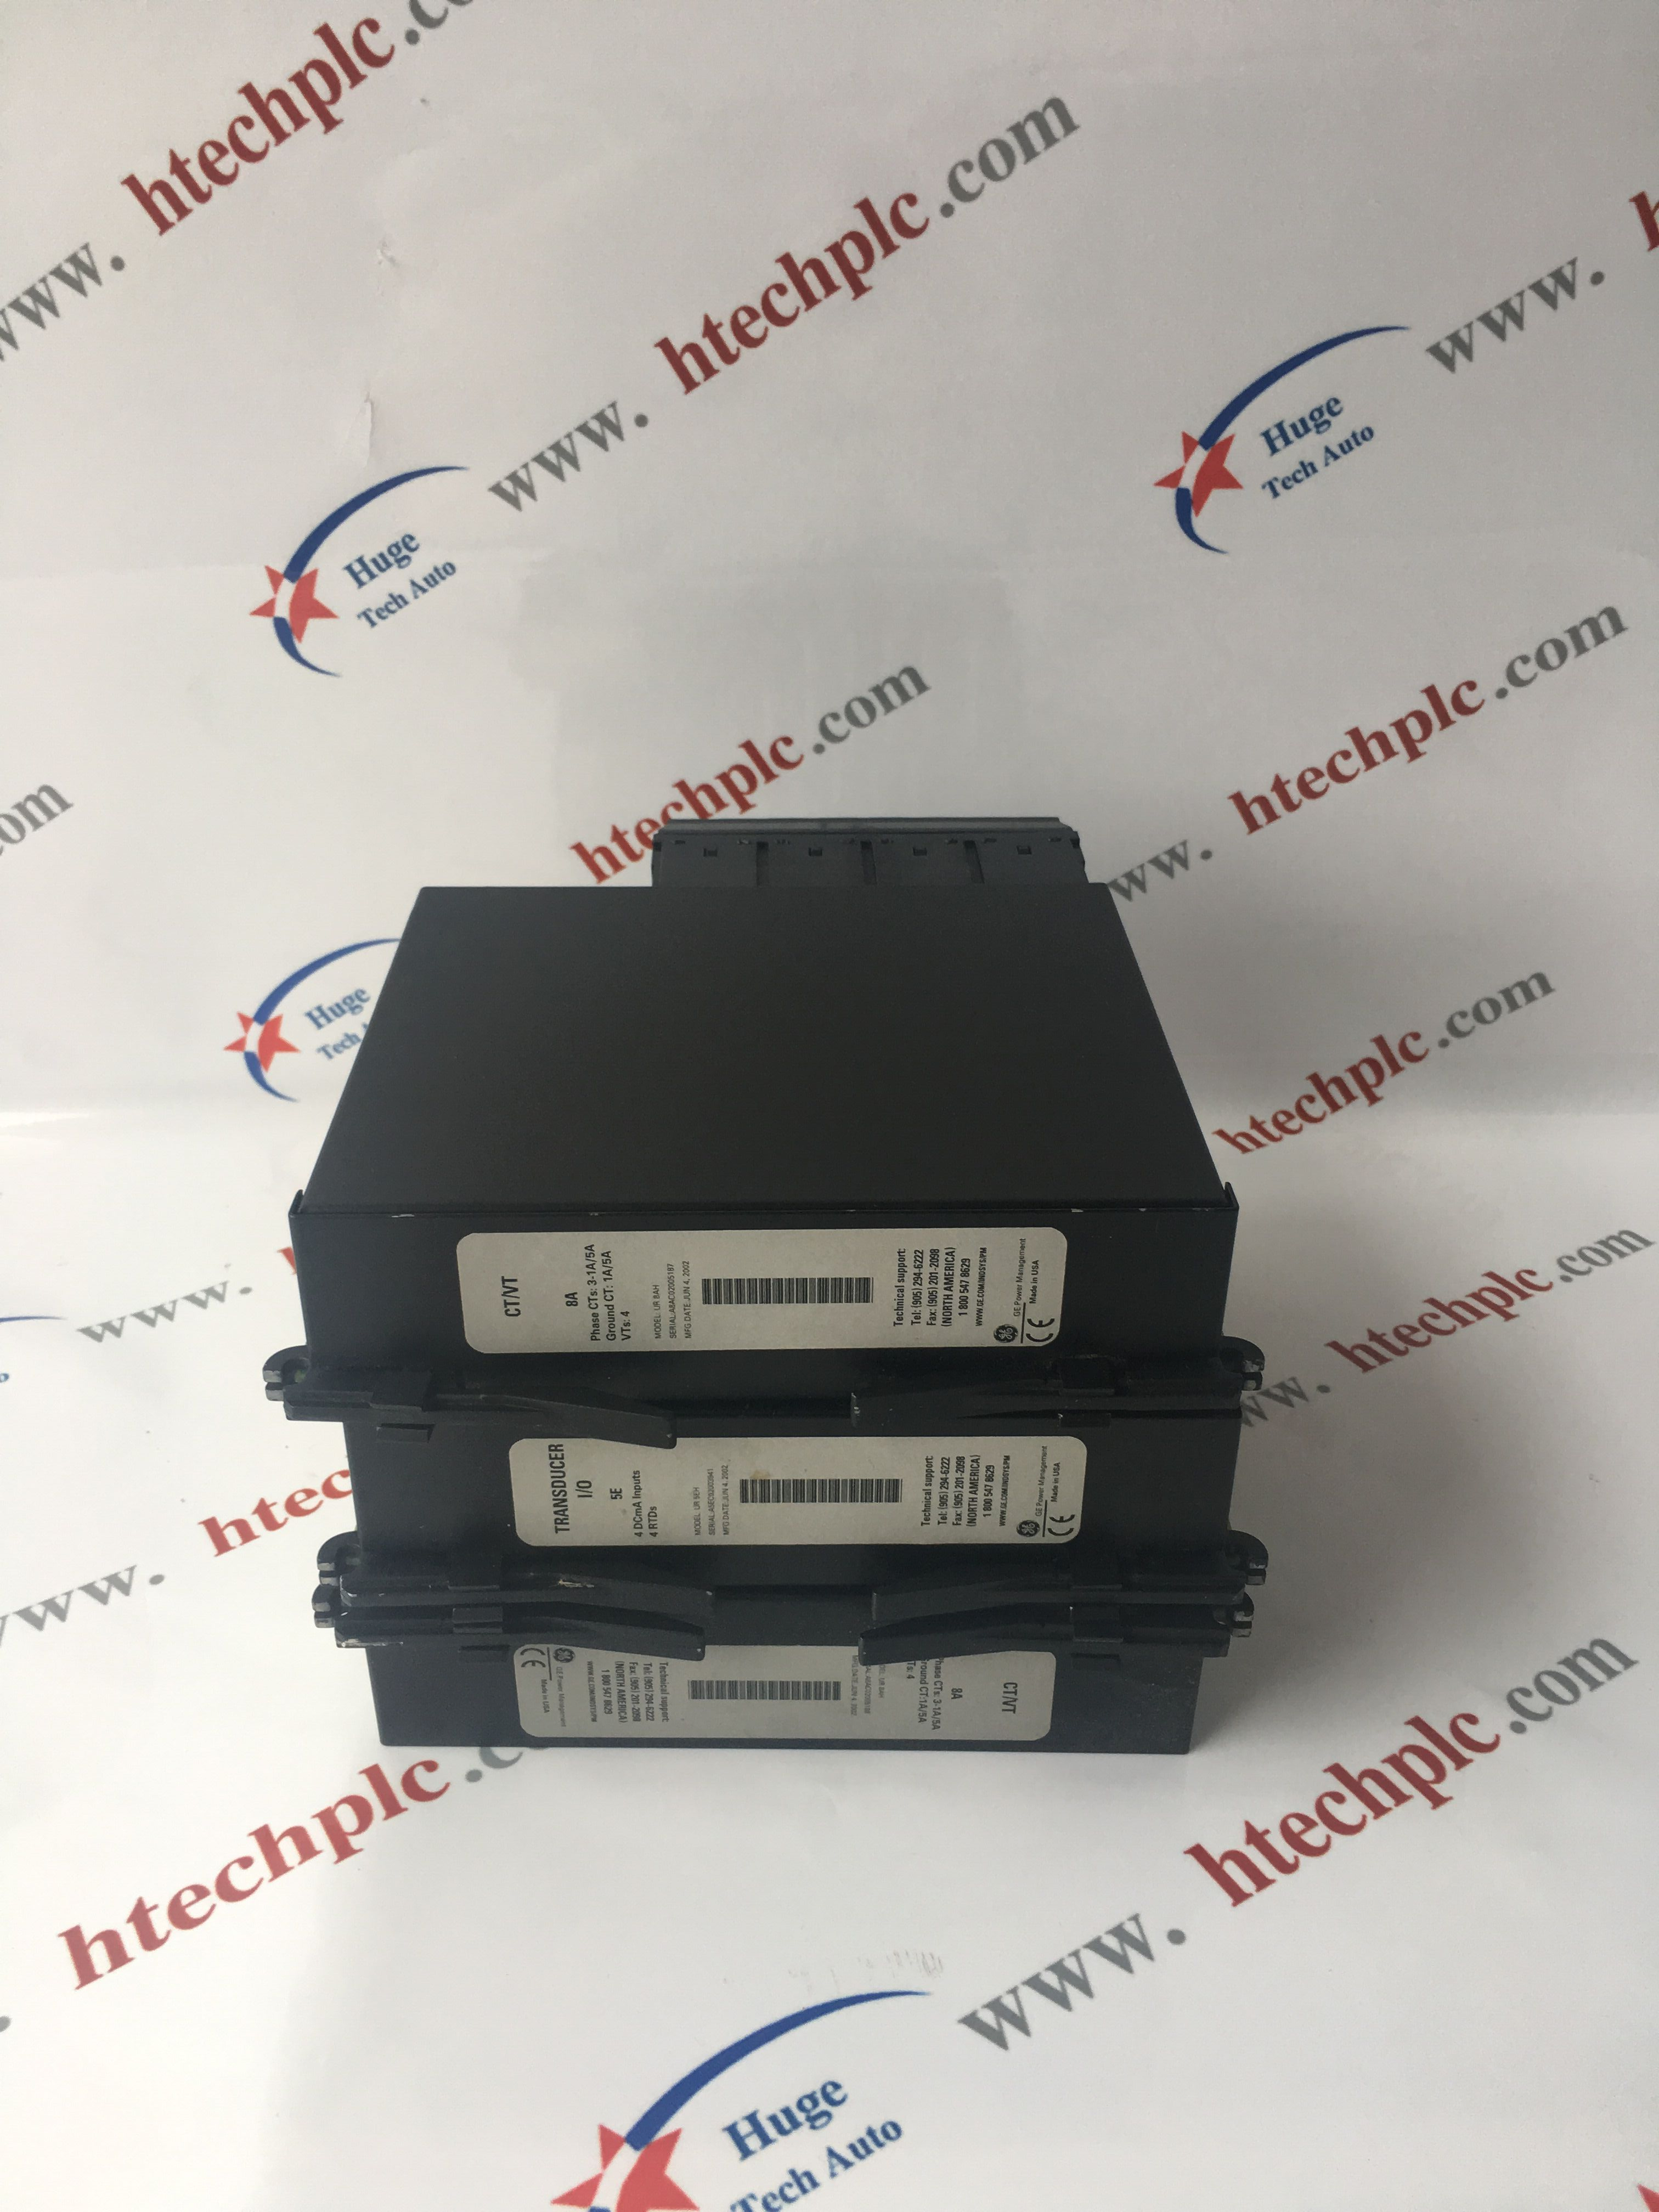 GE 531X139APMAMM7 brand new PLC DCS TSI system spare parts in stock